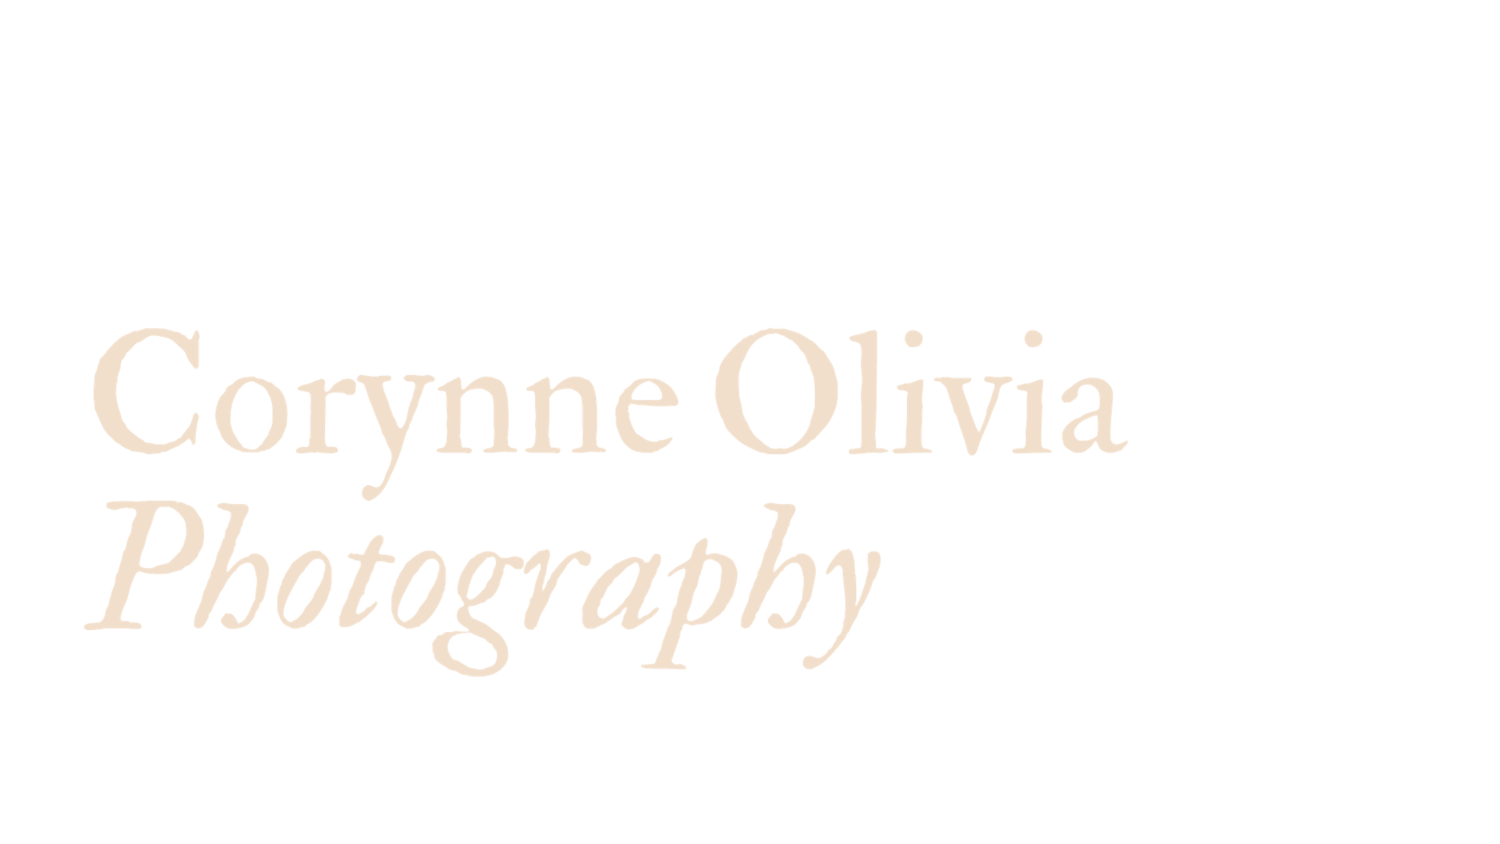 Corynne Olivia Photography